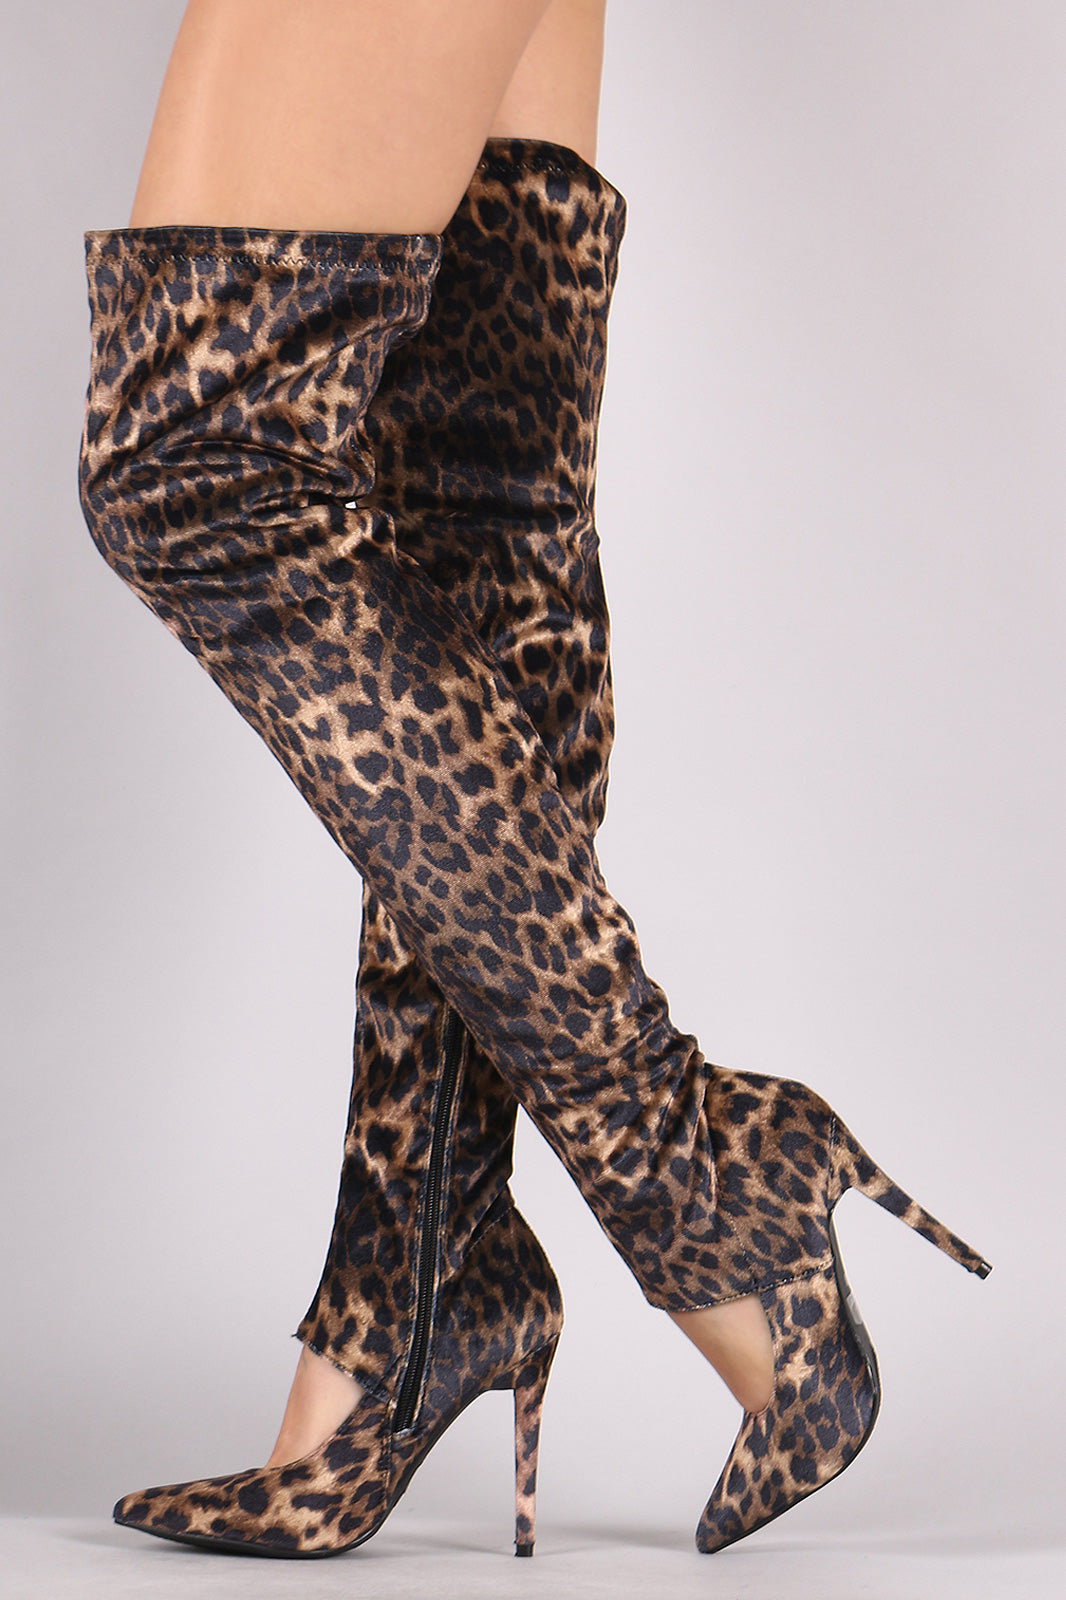 Cutout thigh High Boots For Women By LUD | Shop Women's Fashion Leopard Cutout Stiletto Over-The-Knee Boots For Women SexXxy thigh High Boots